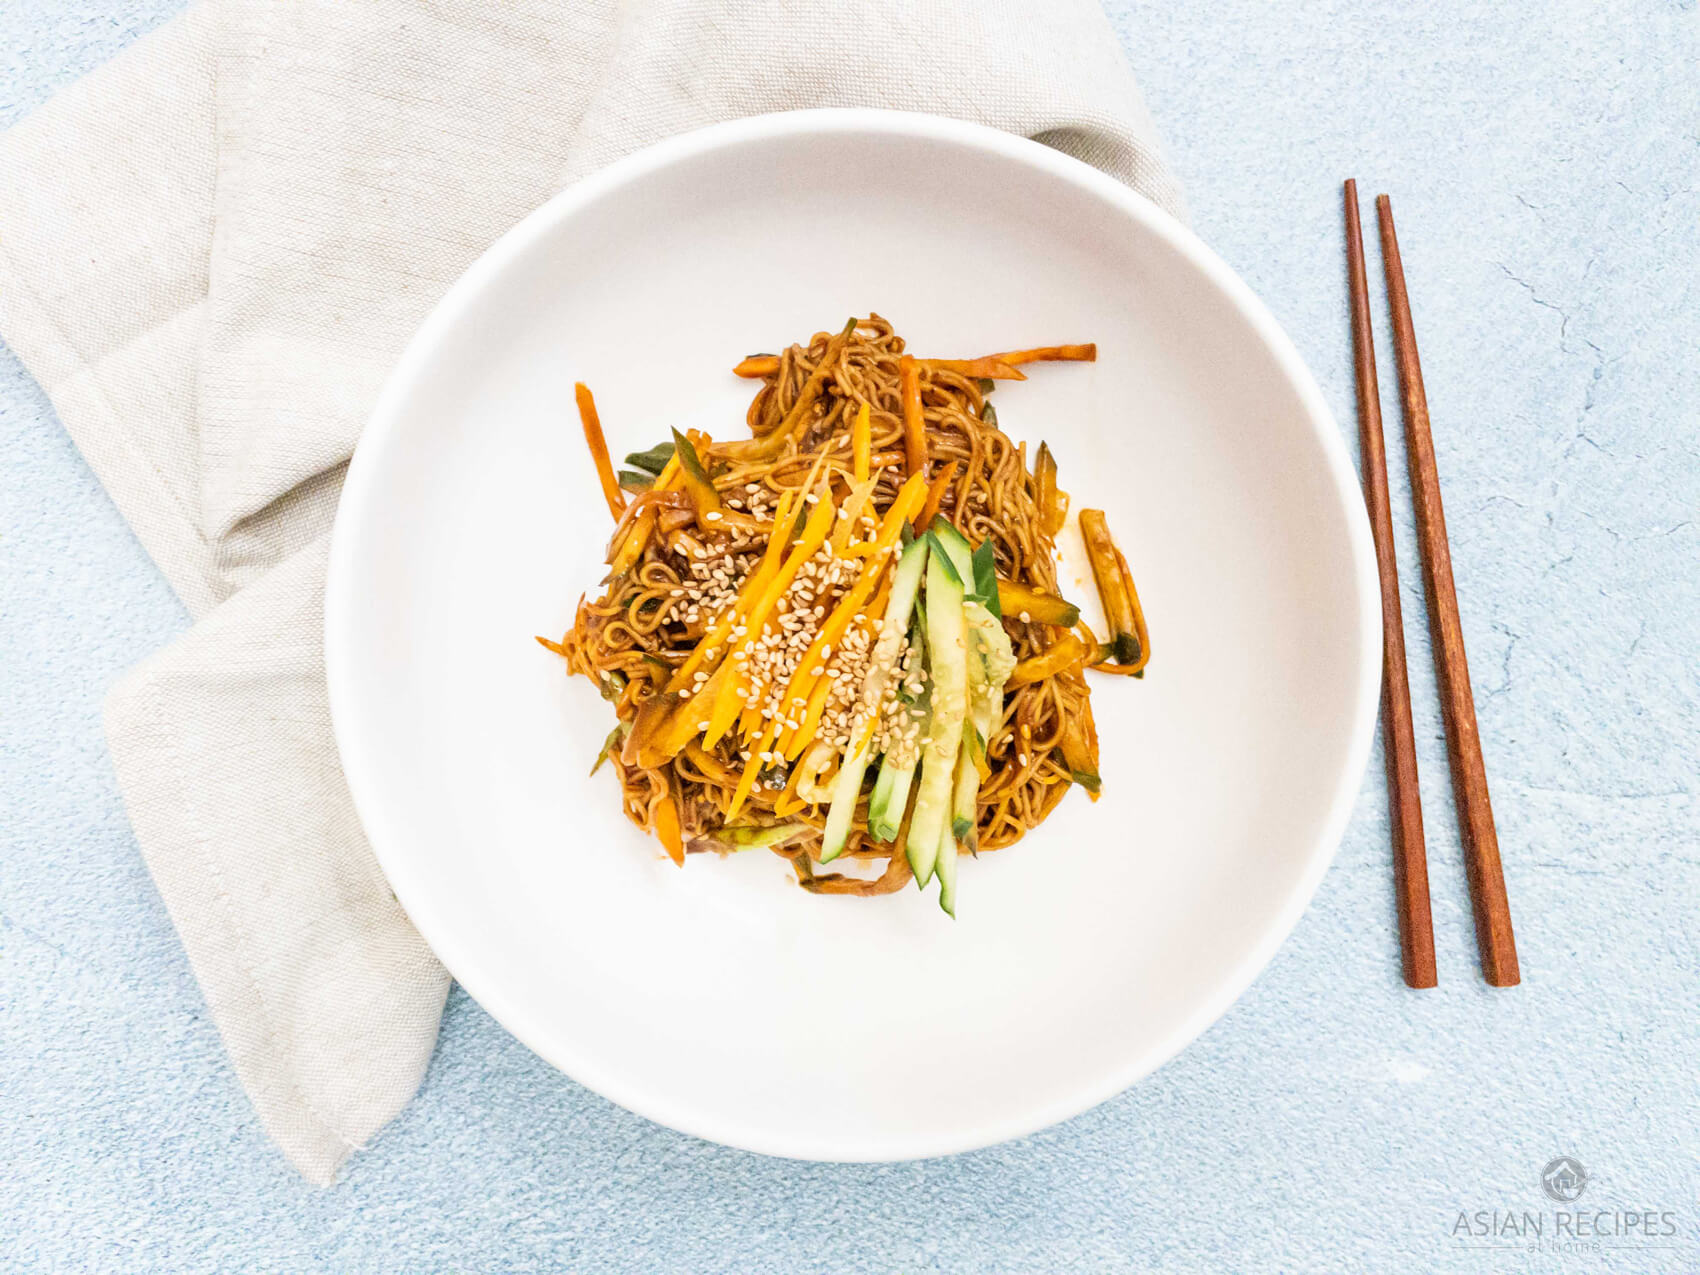 Noodles covered in a spicy gochujang sauce is the perfect cold noodle bowl to have during Summer!